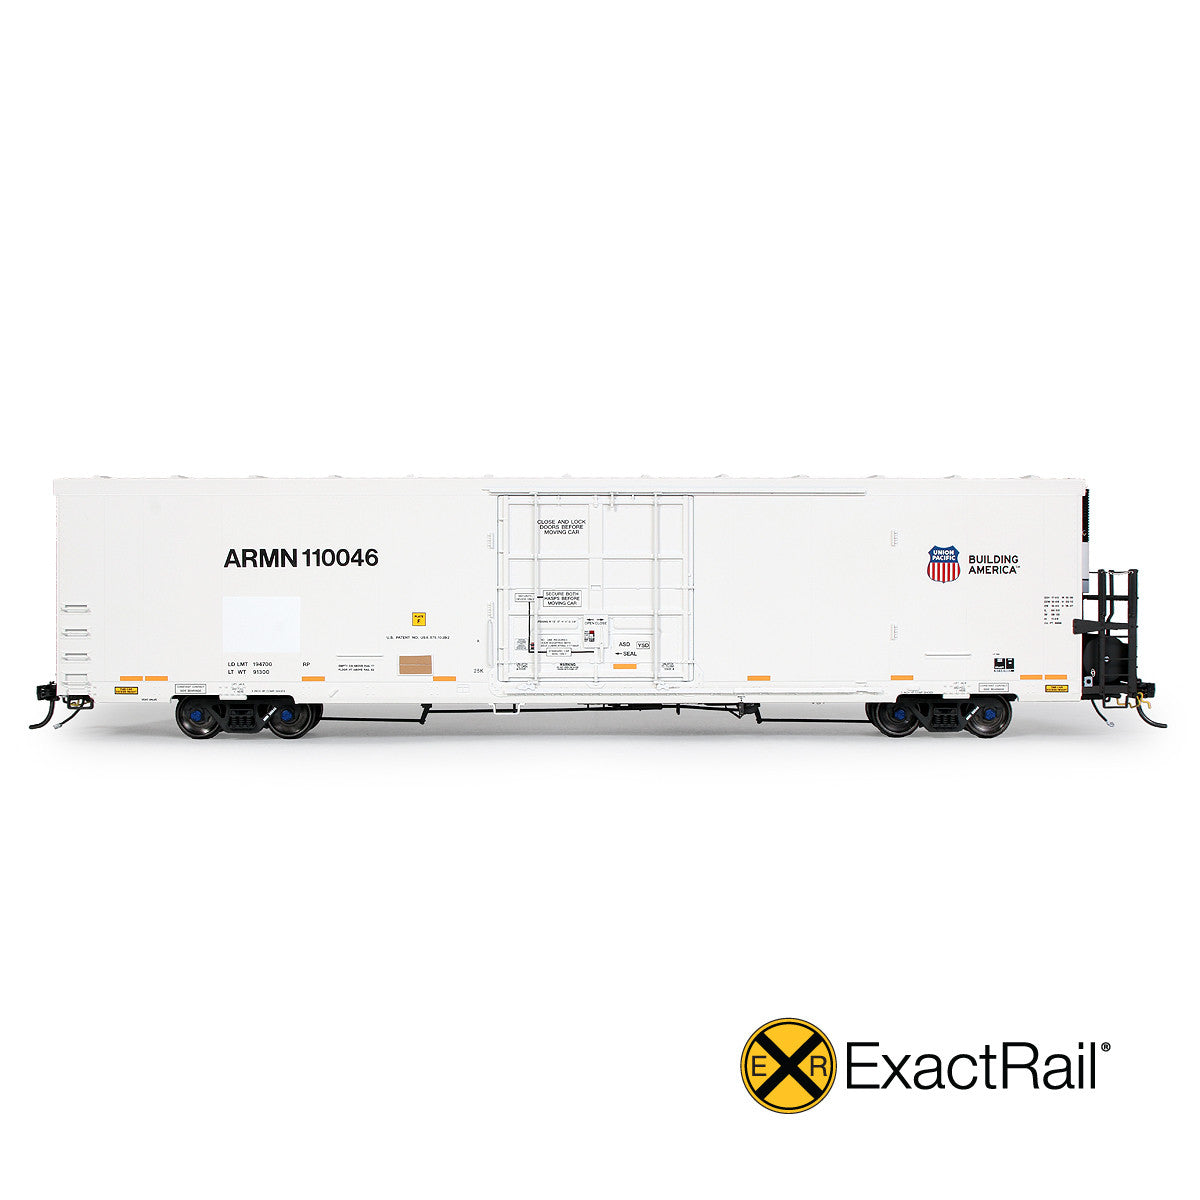 New From ExactRail & Available Now!